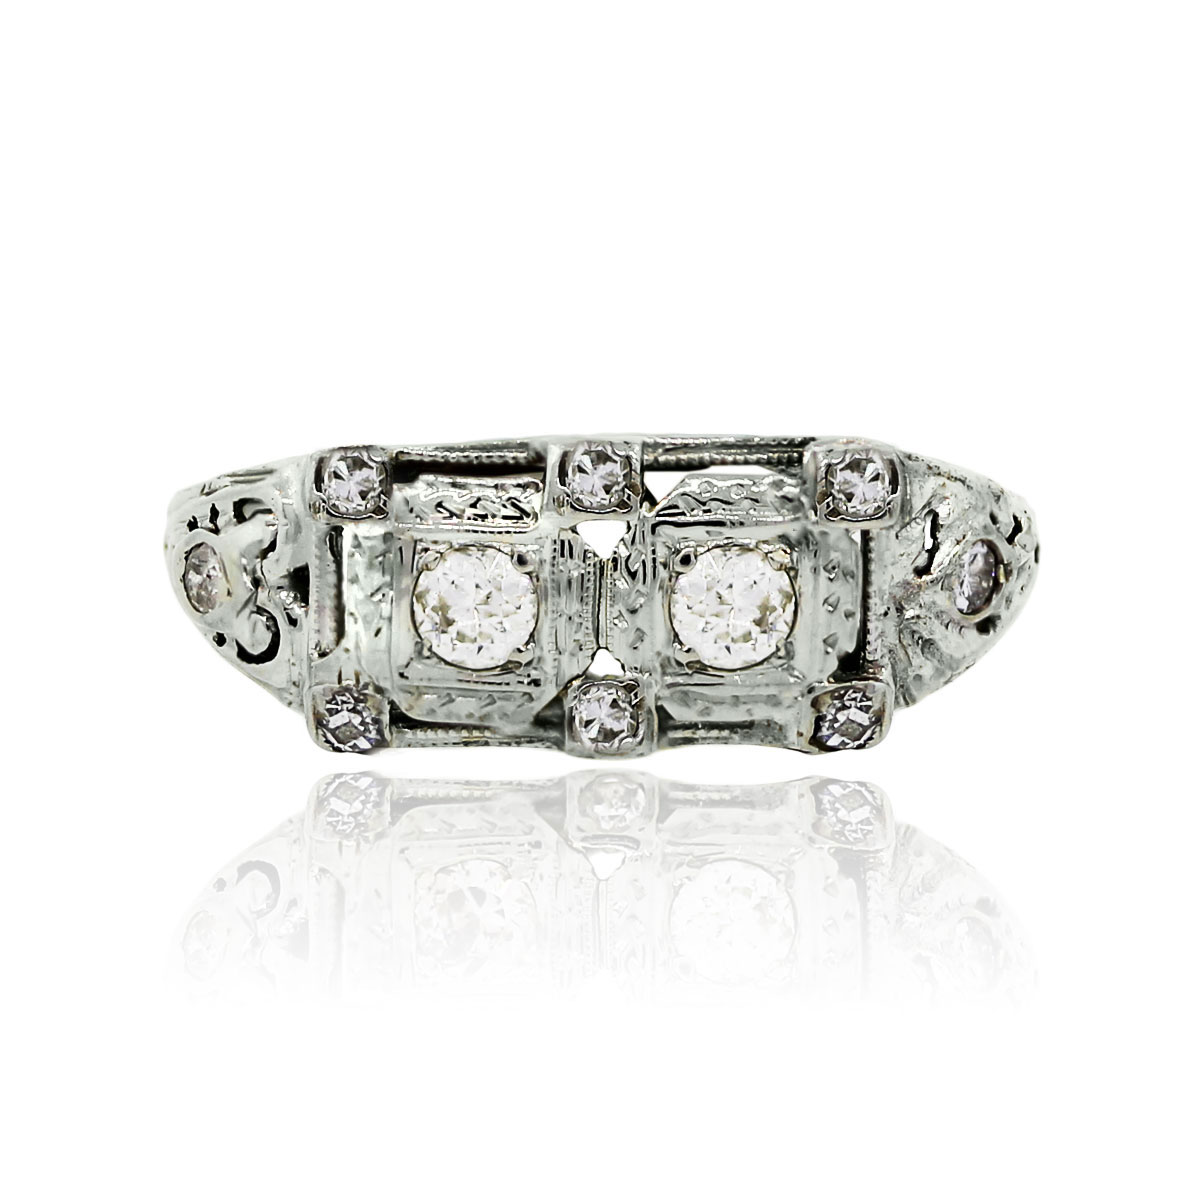 You are viewing this 14k White Gold 0.35ctw Round Brilliant Diamonds Vintage Ring!